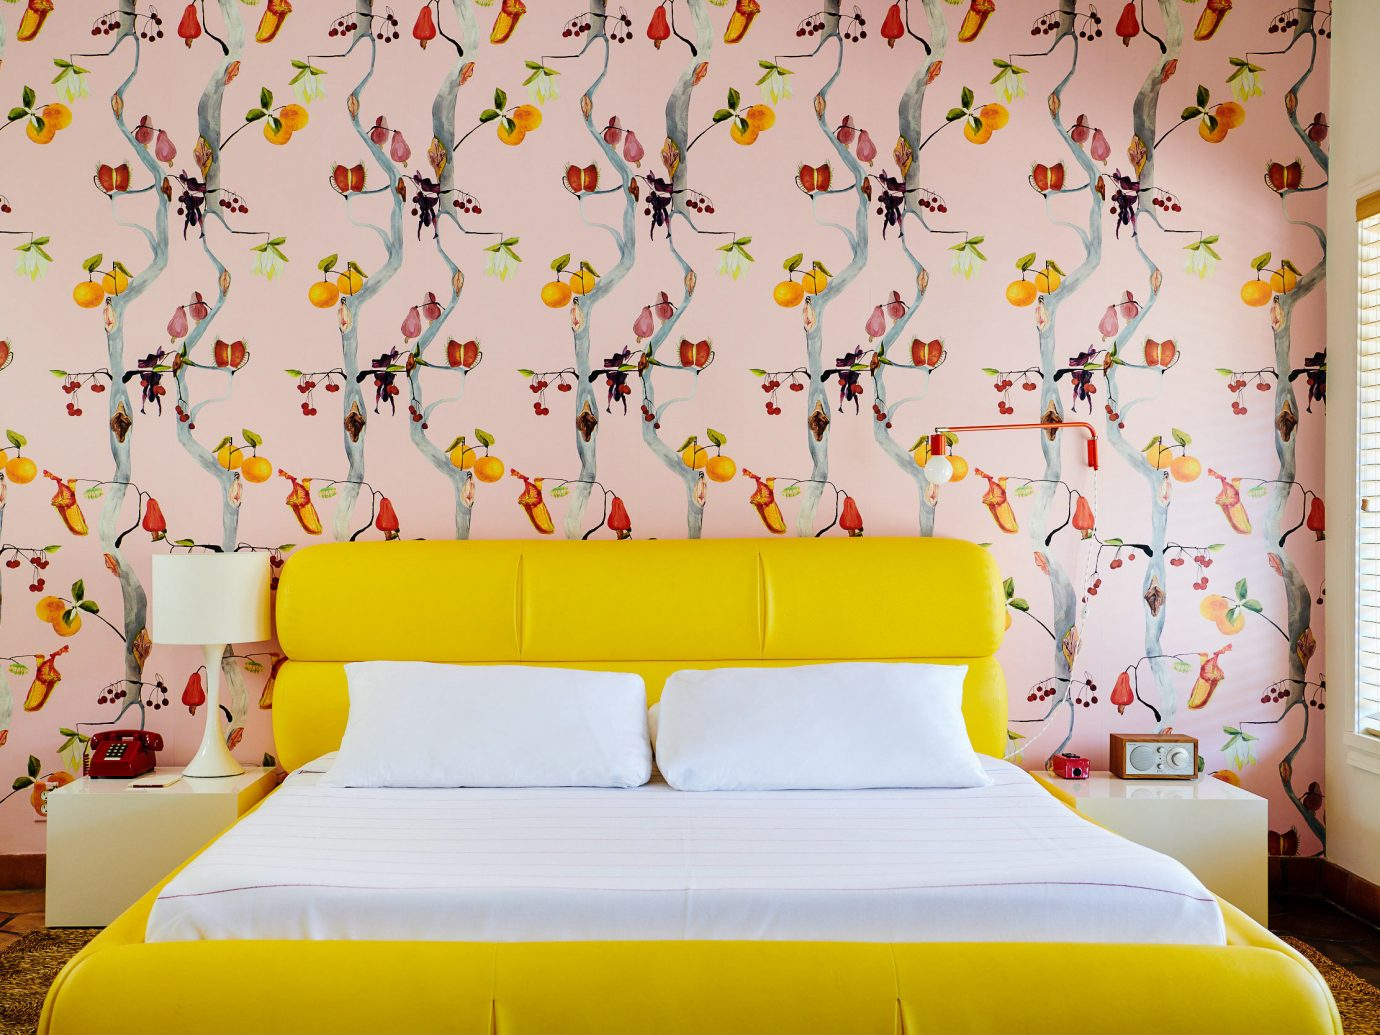 Austin Girls Getaways Texas Trip Ideas Weekend Getaways bed indoor wall yellow room interior design Bedroom bed sheet wallpaper textile bed frame decor pattern window bedclothes